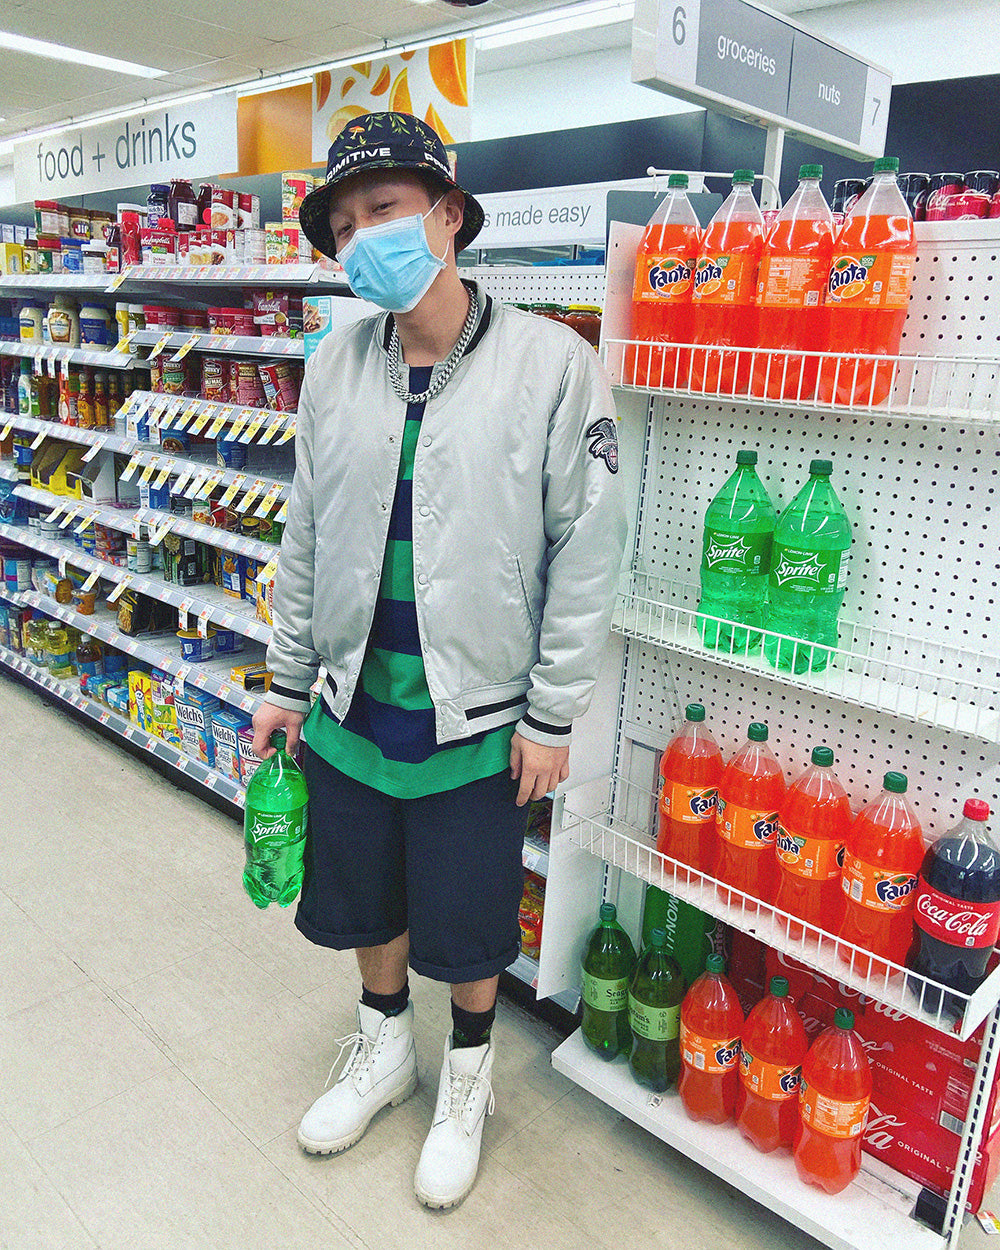 Photo of Matt in NY convenience store during Covid-19